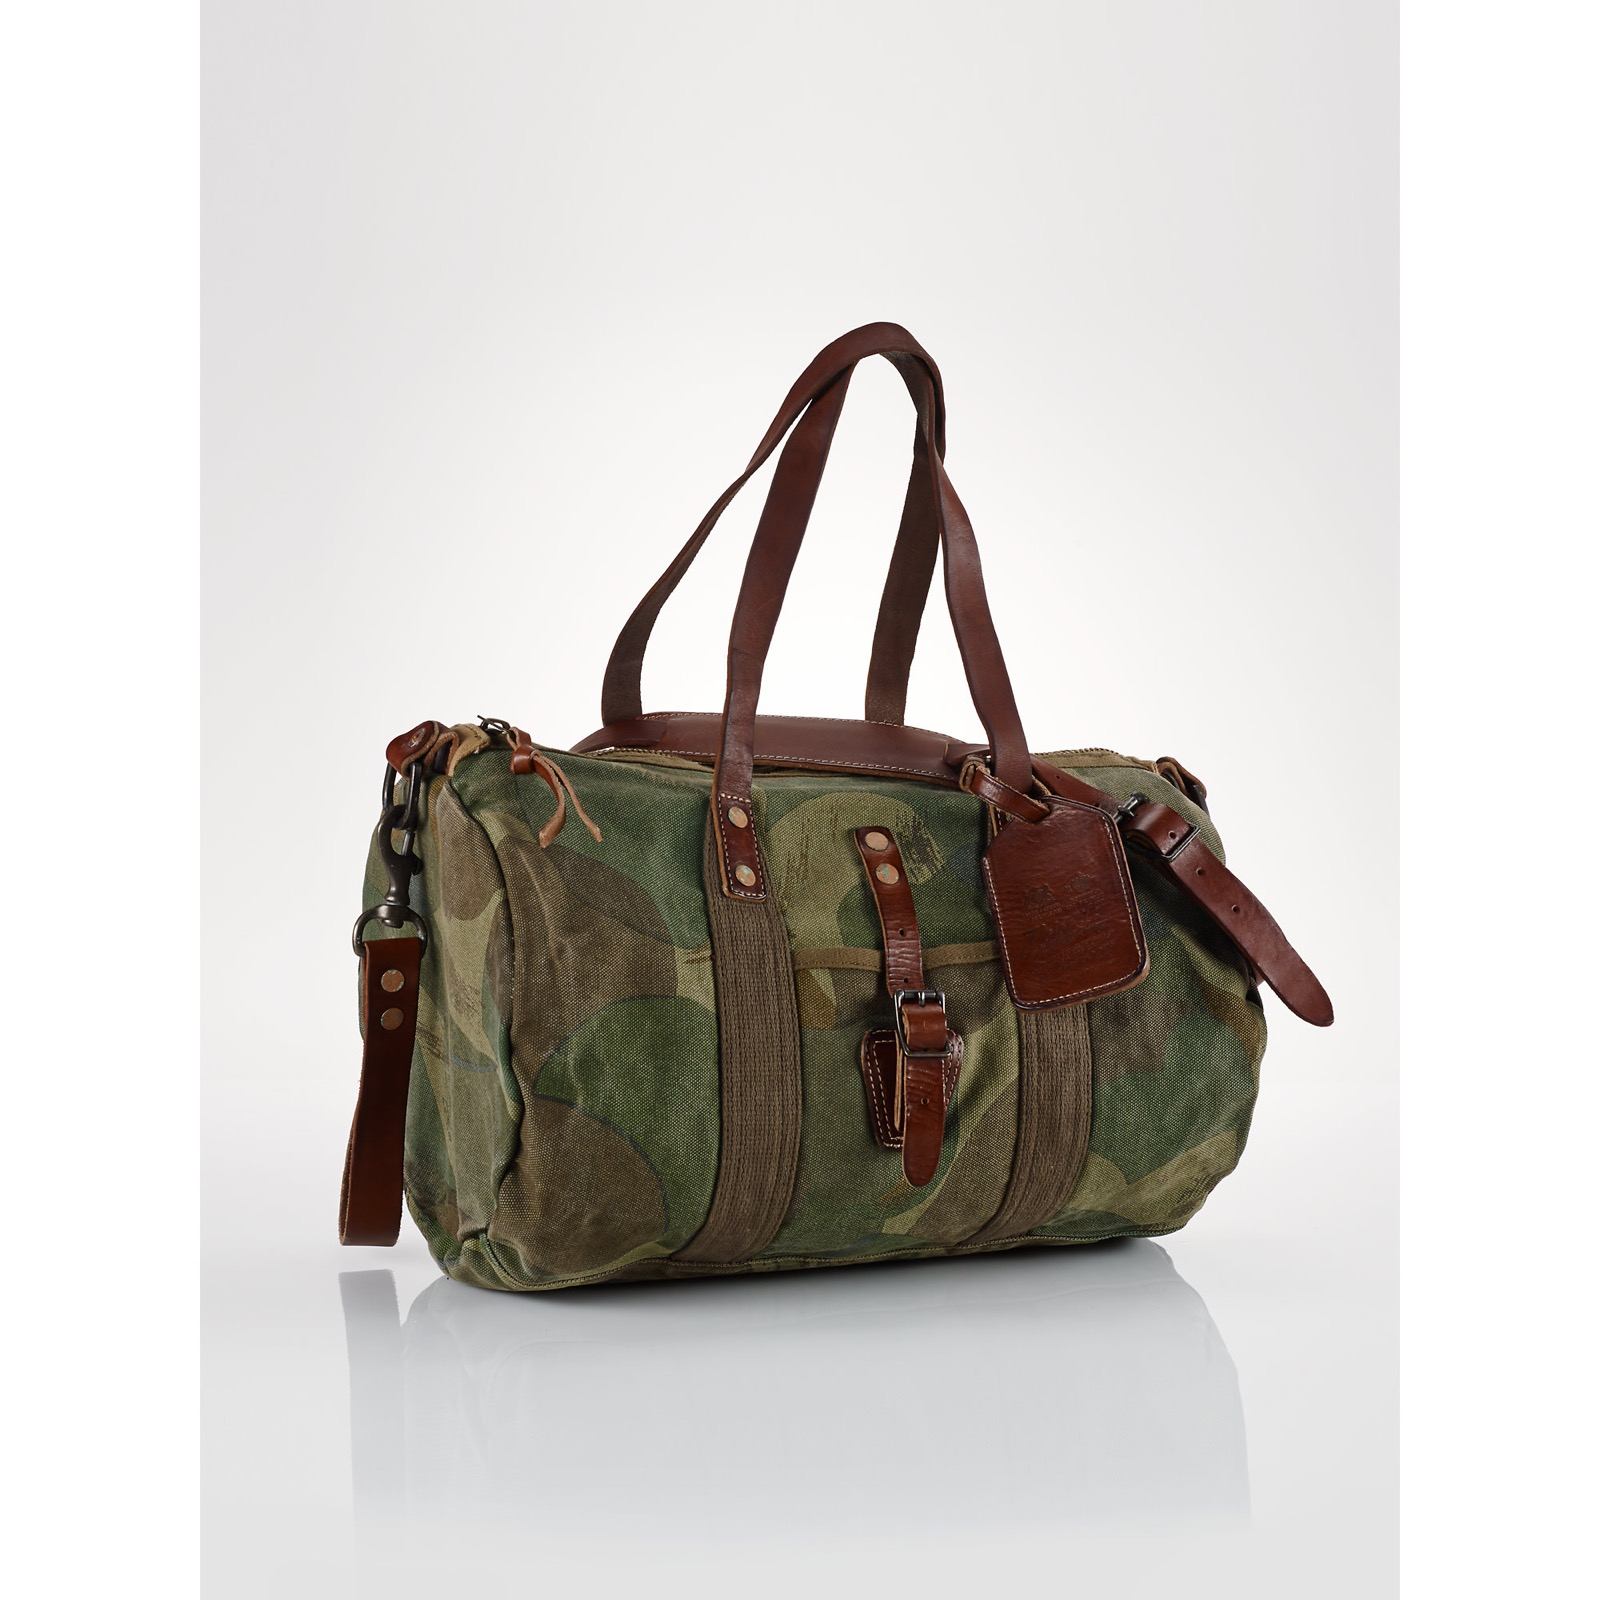 bcbc65bddf Polo Ralph Lauren Camo Canvas Leather Gym Duffle Bag Size one size - Bags    Luggage for Sale - Grailed